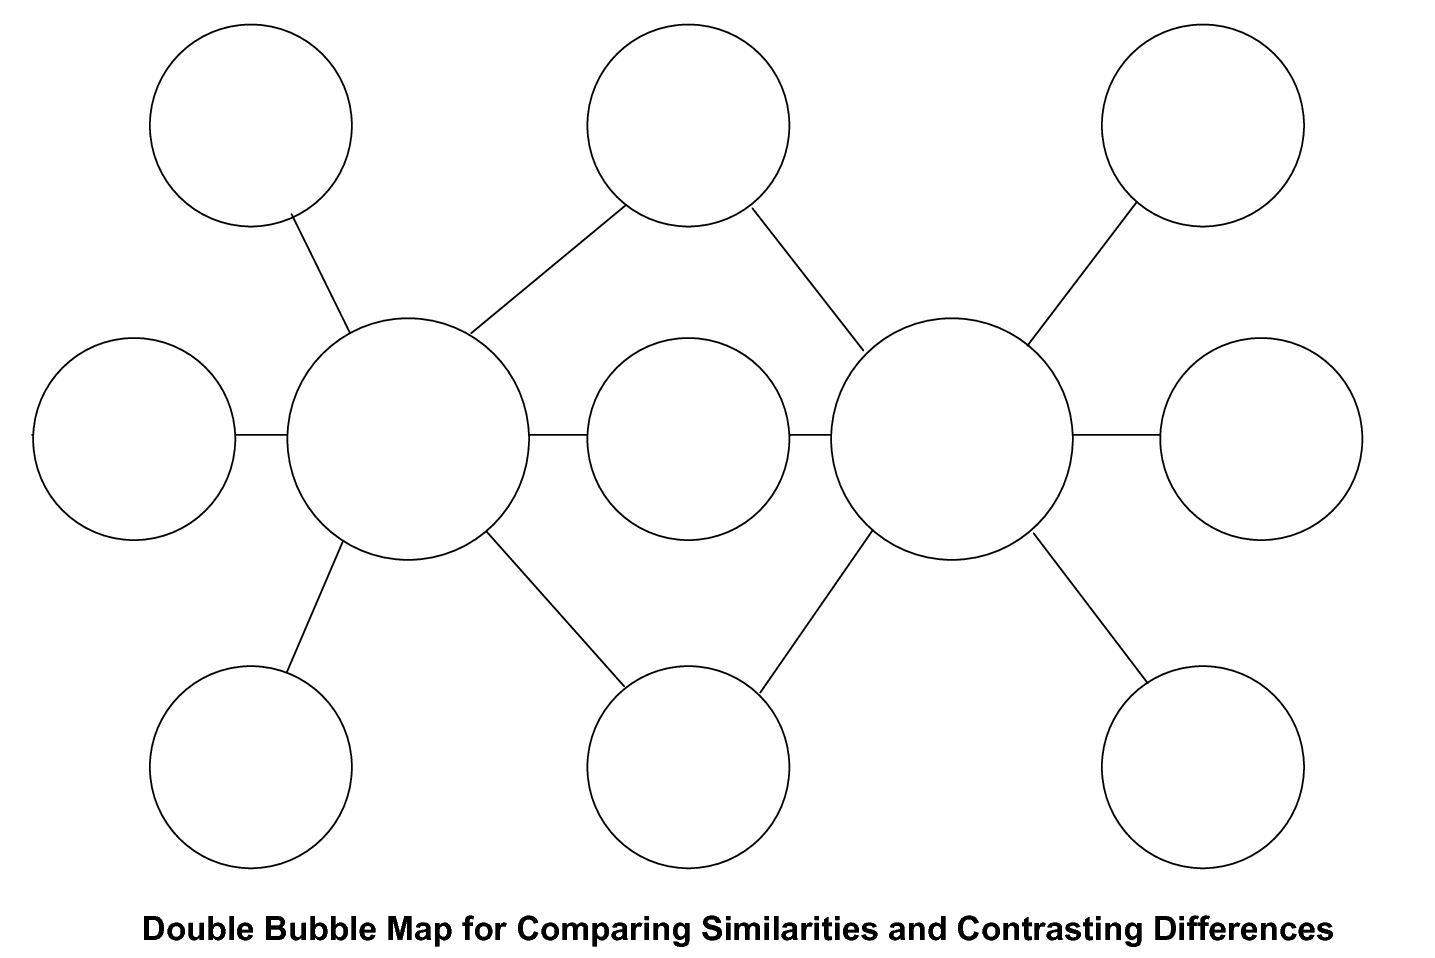 photo about Double Bubble Map Printable titled Double Bubble Map Printable Printable Maps